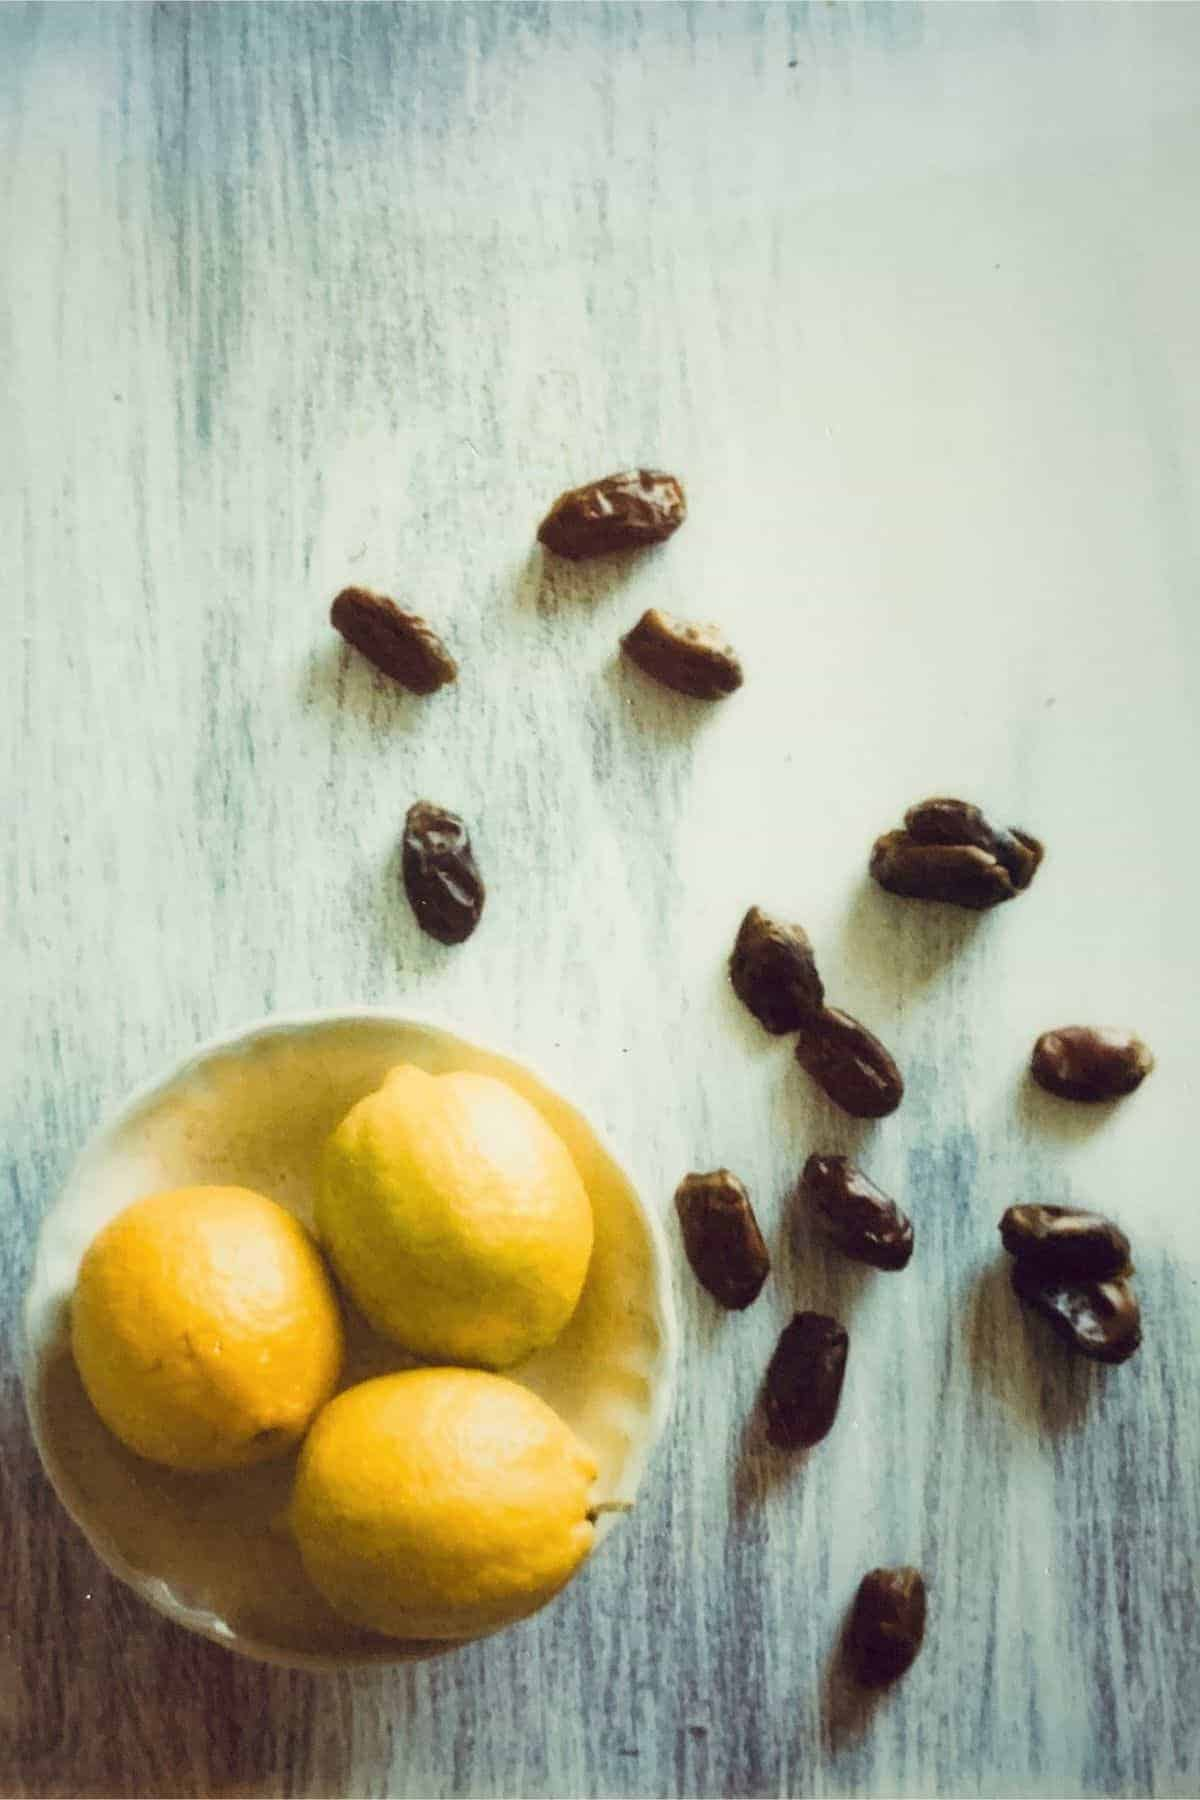 a bowl of lemons and scattered dates on a table